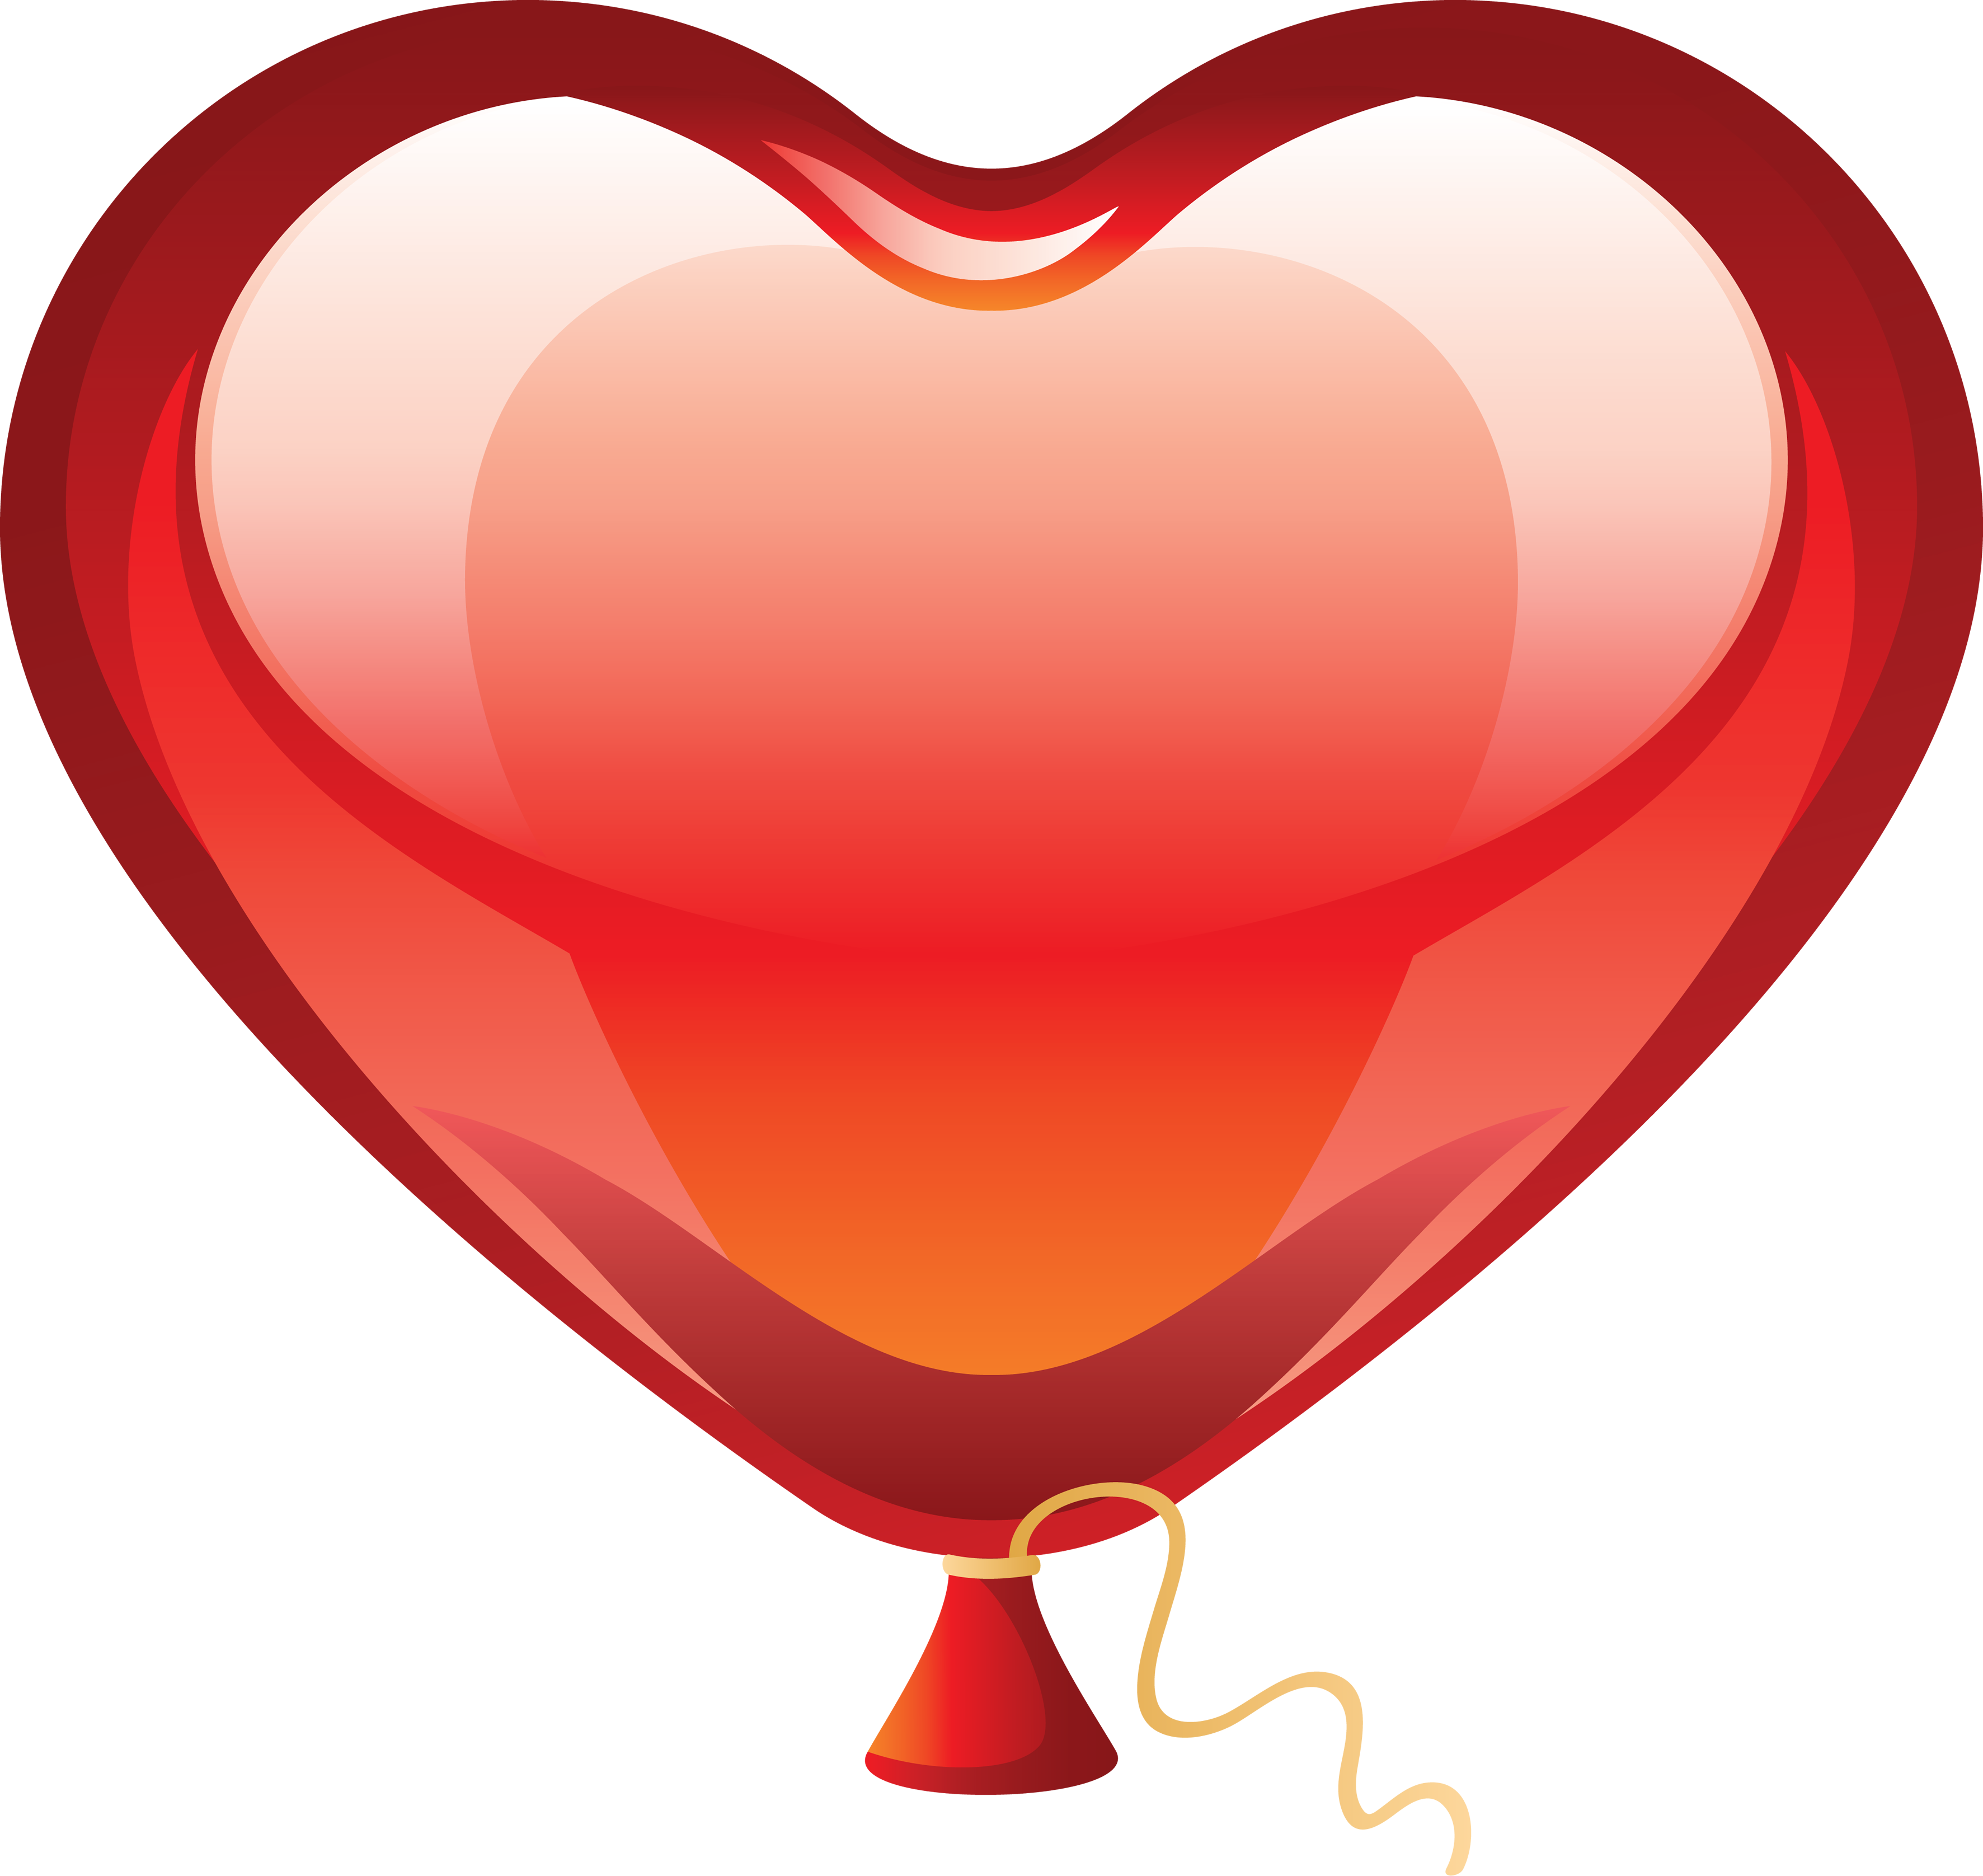 Red Heart Balloon Png image #28095